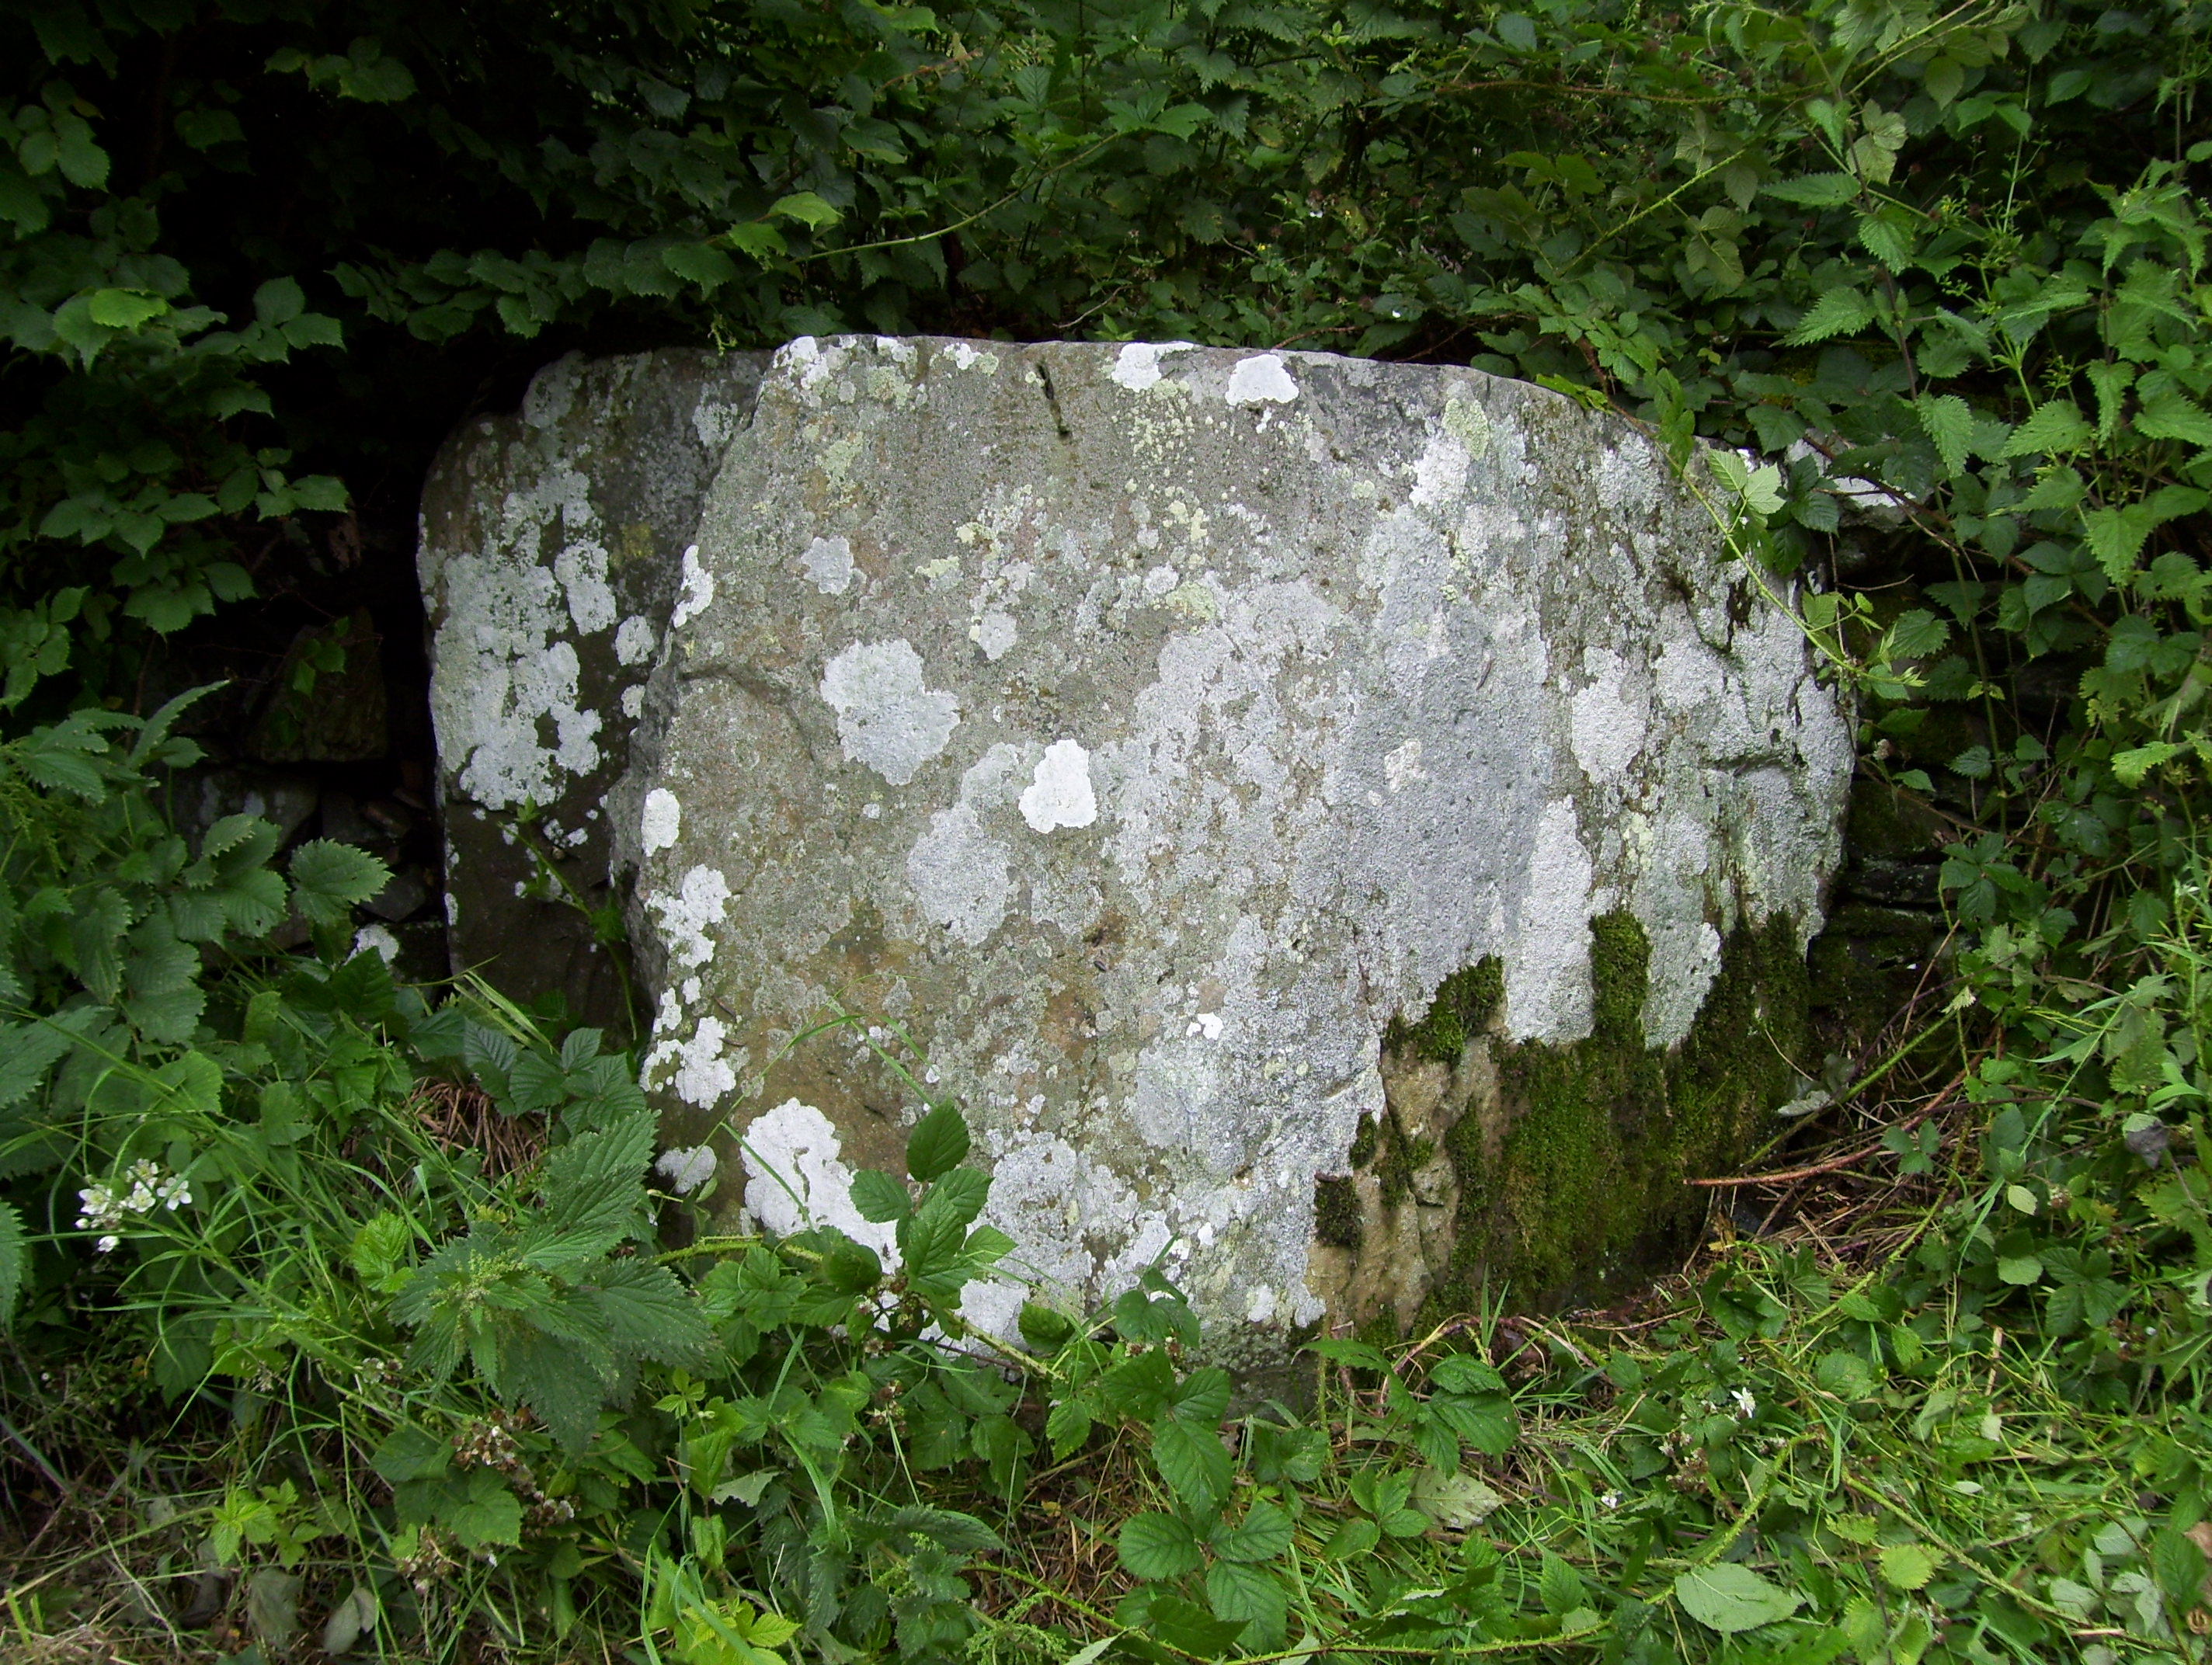 The Alter Stone